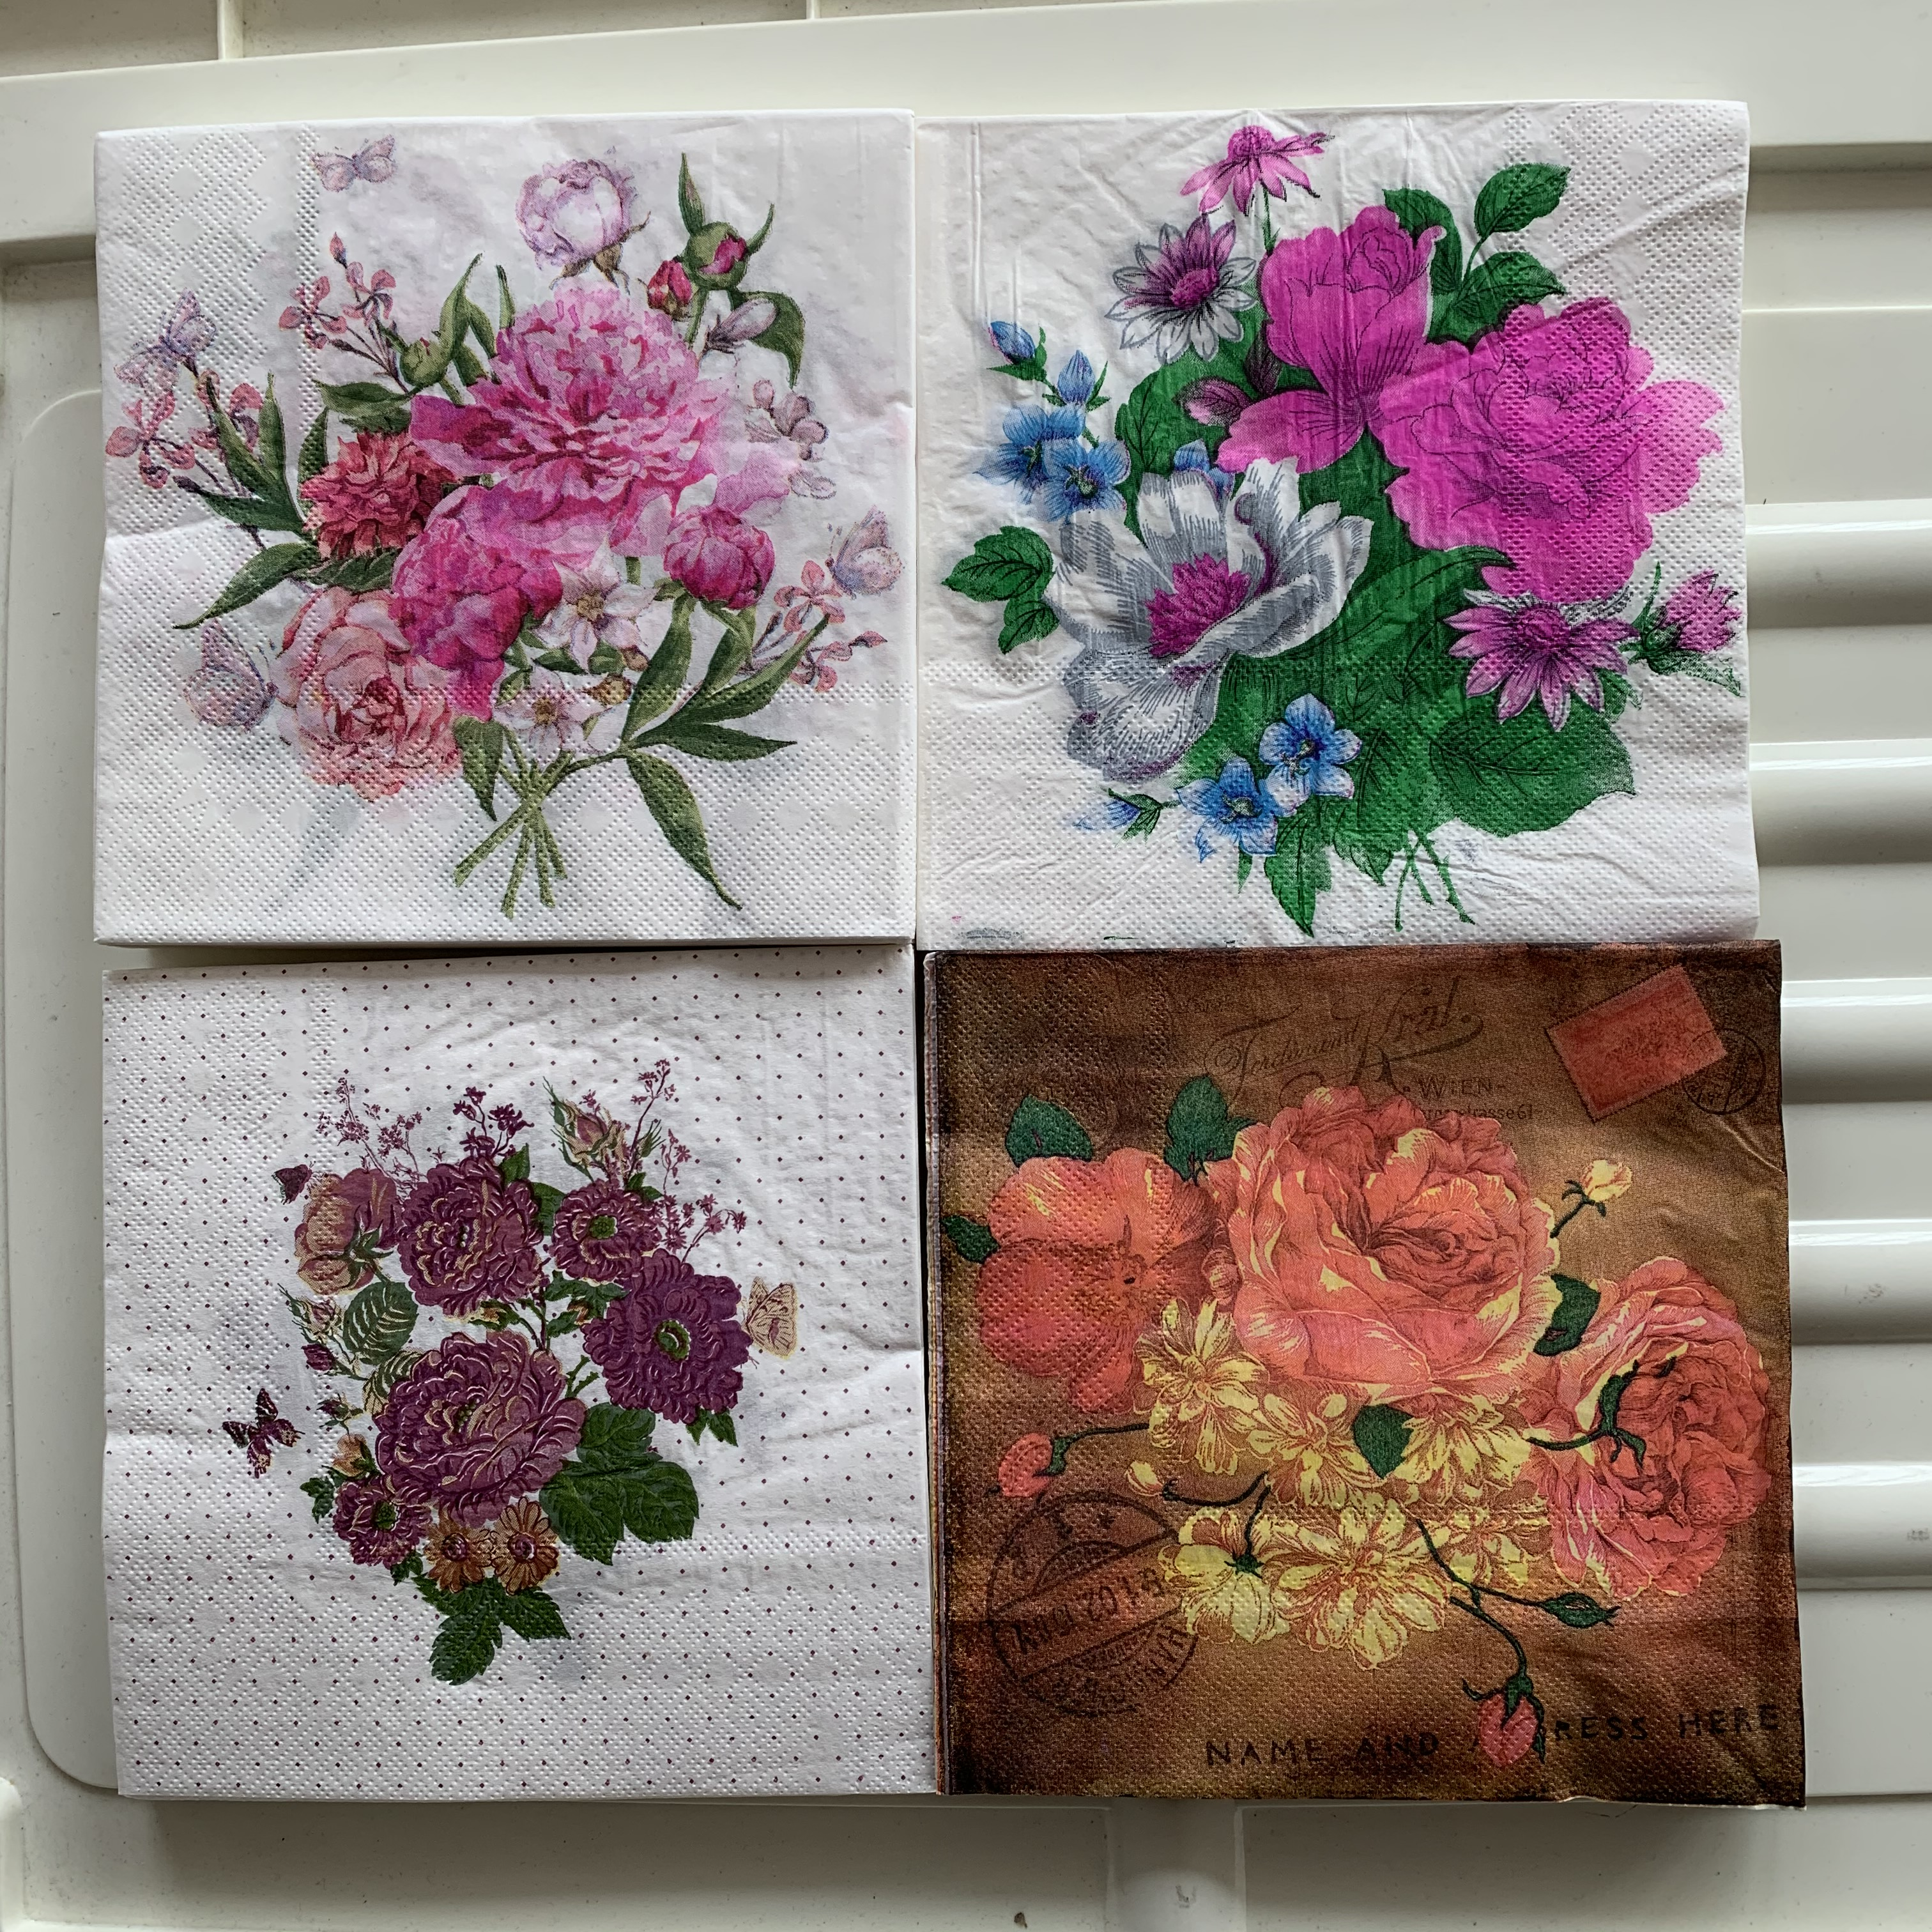 Beautiful Napkins Paper Tissue Floral Pattern Peony Flower Butterfly Handerchief Decoupage Craft Wedding Birthday Party Decor